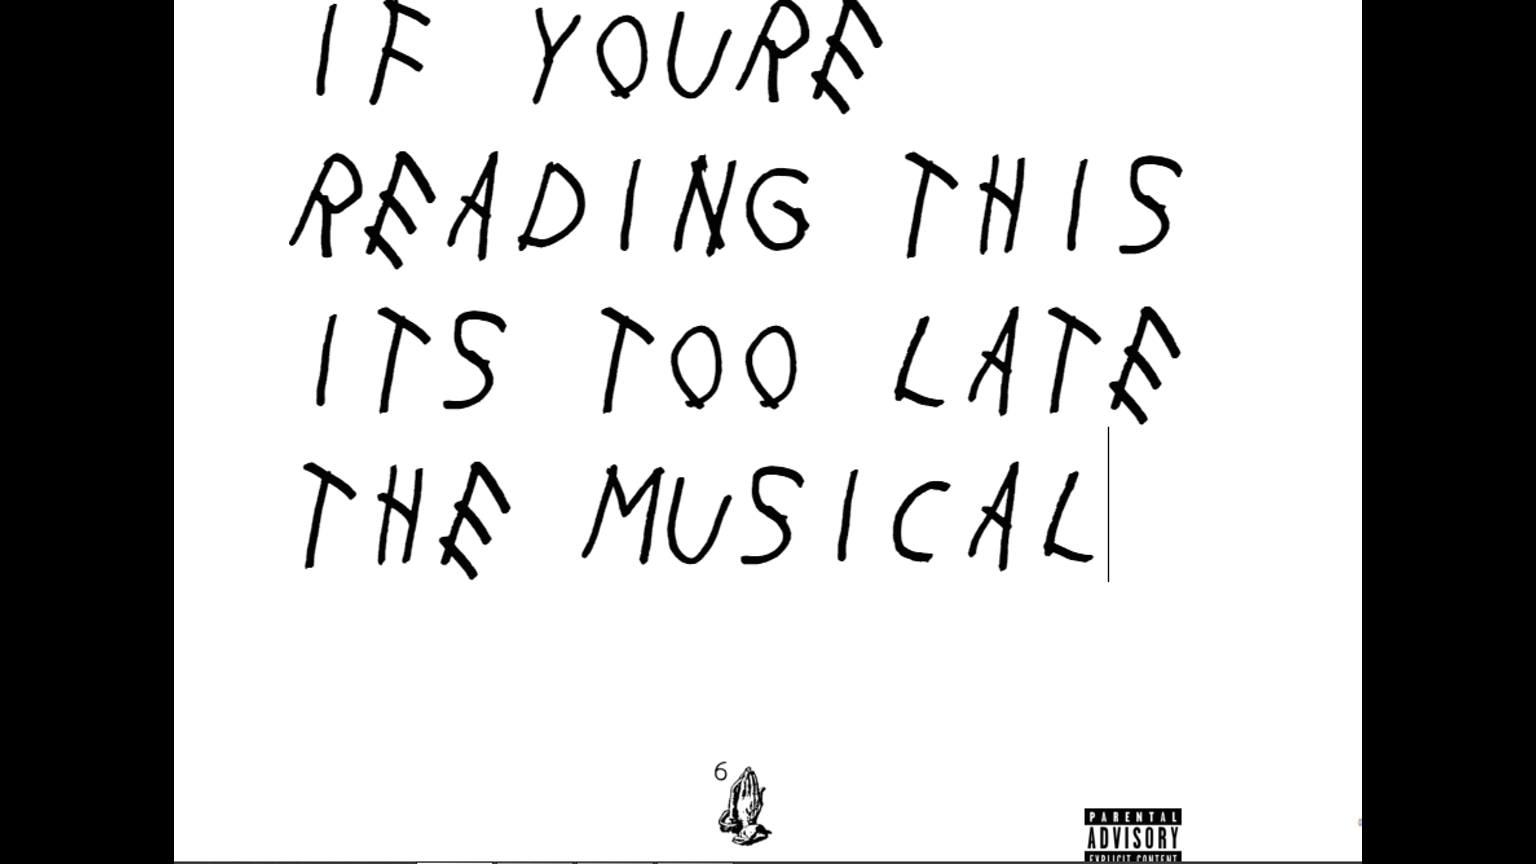 If You're Reading This It's Too Late The Musical by Jacob